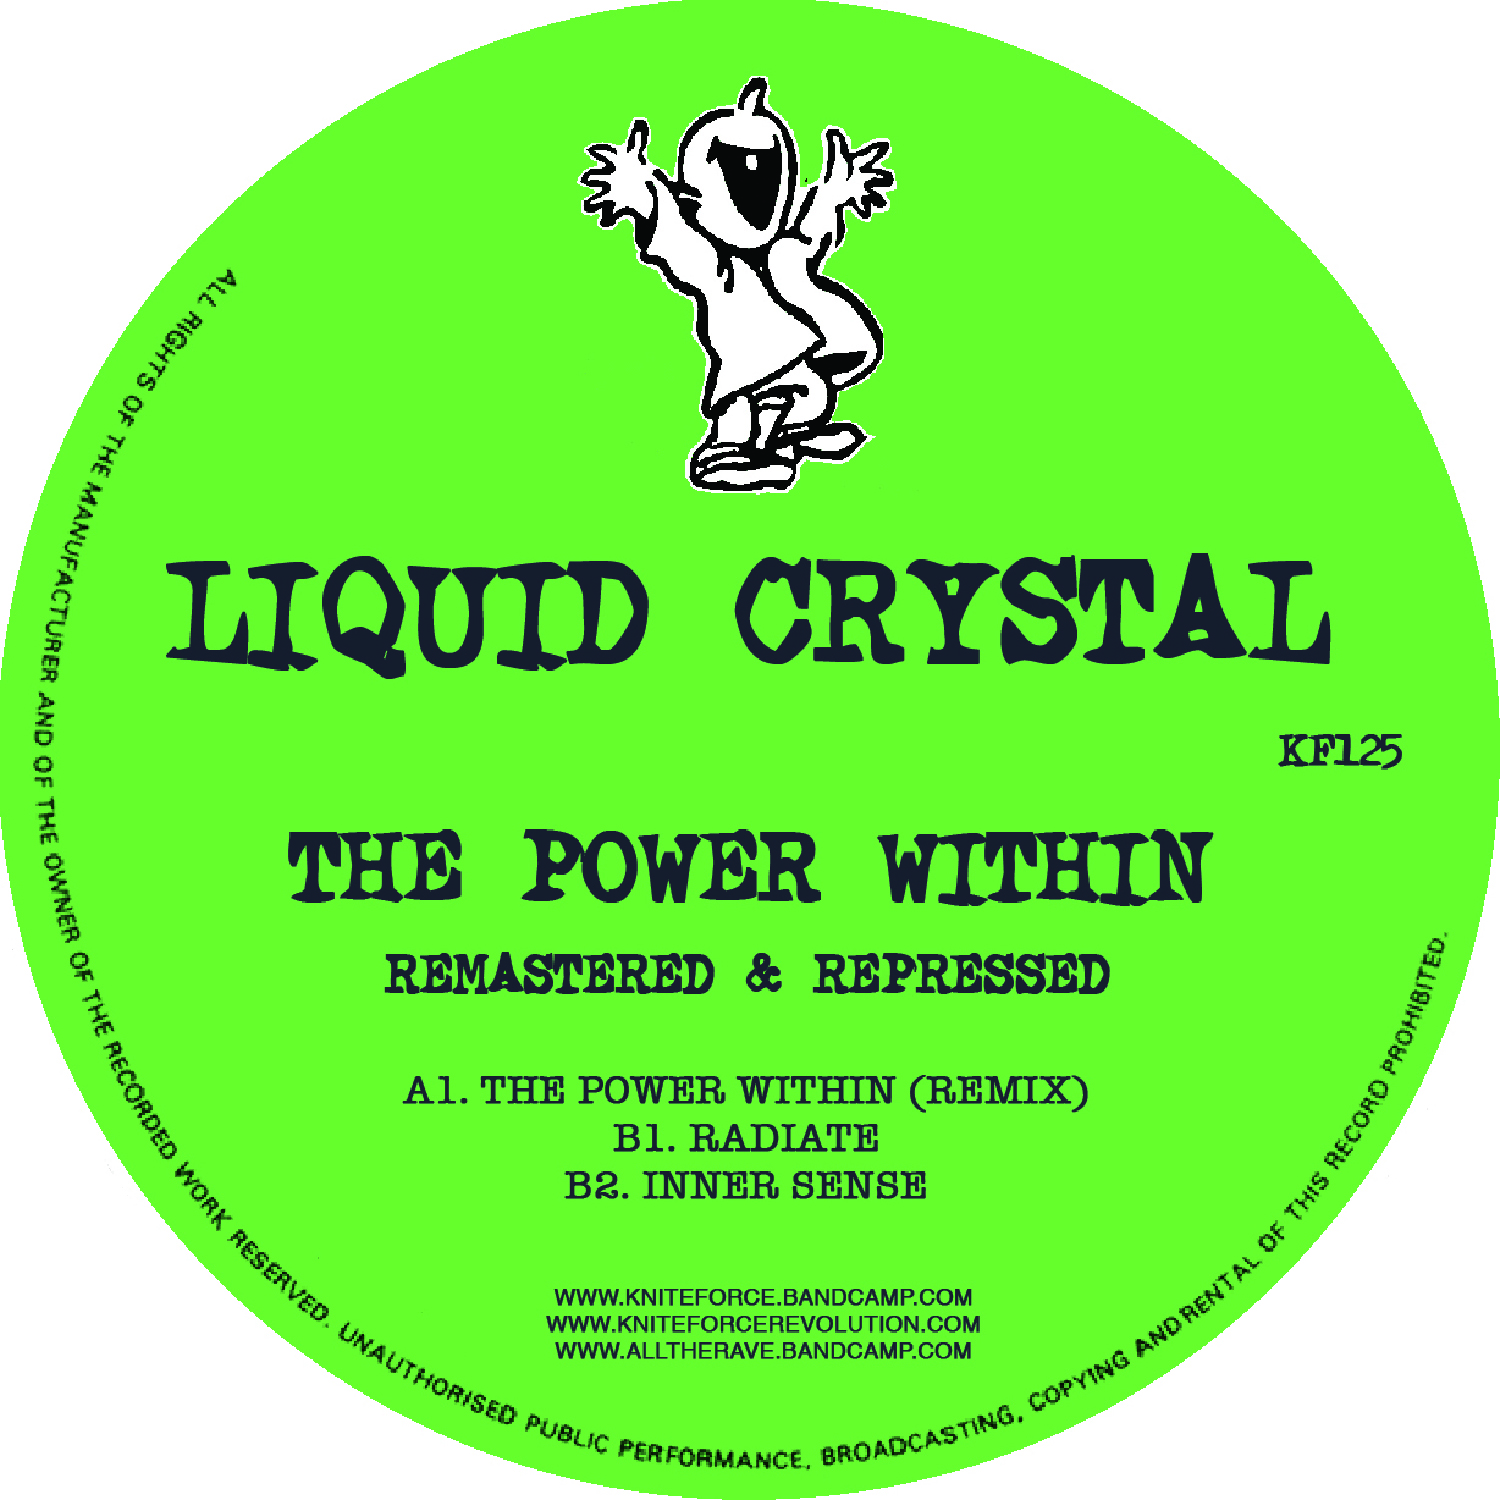 "[KF125] Liquid Crystal - The Power Within Remix Remasterd EP (12"" Vinyl + Digital)"